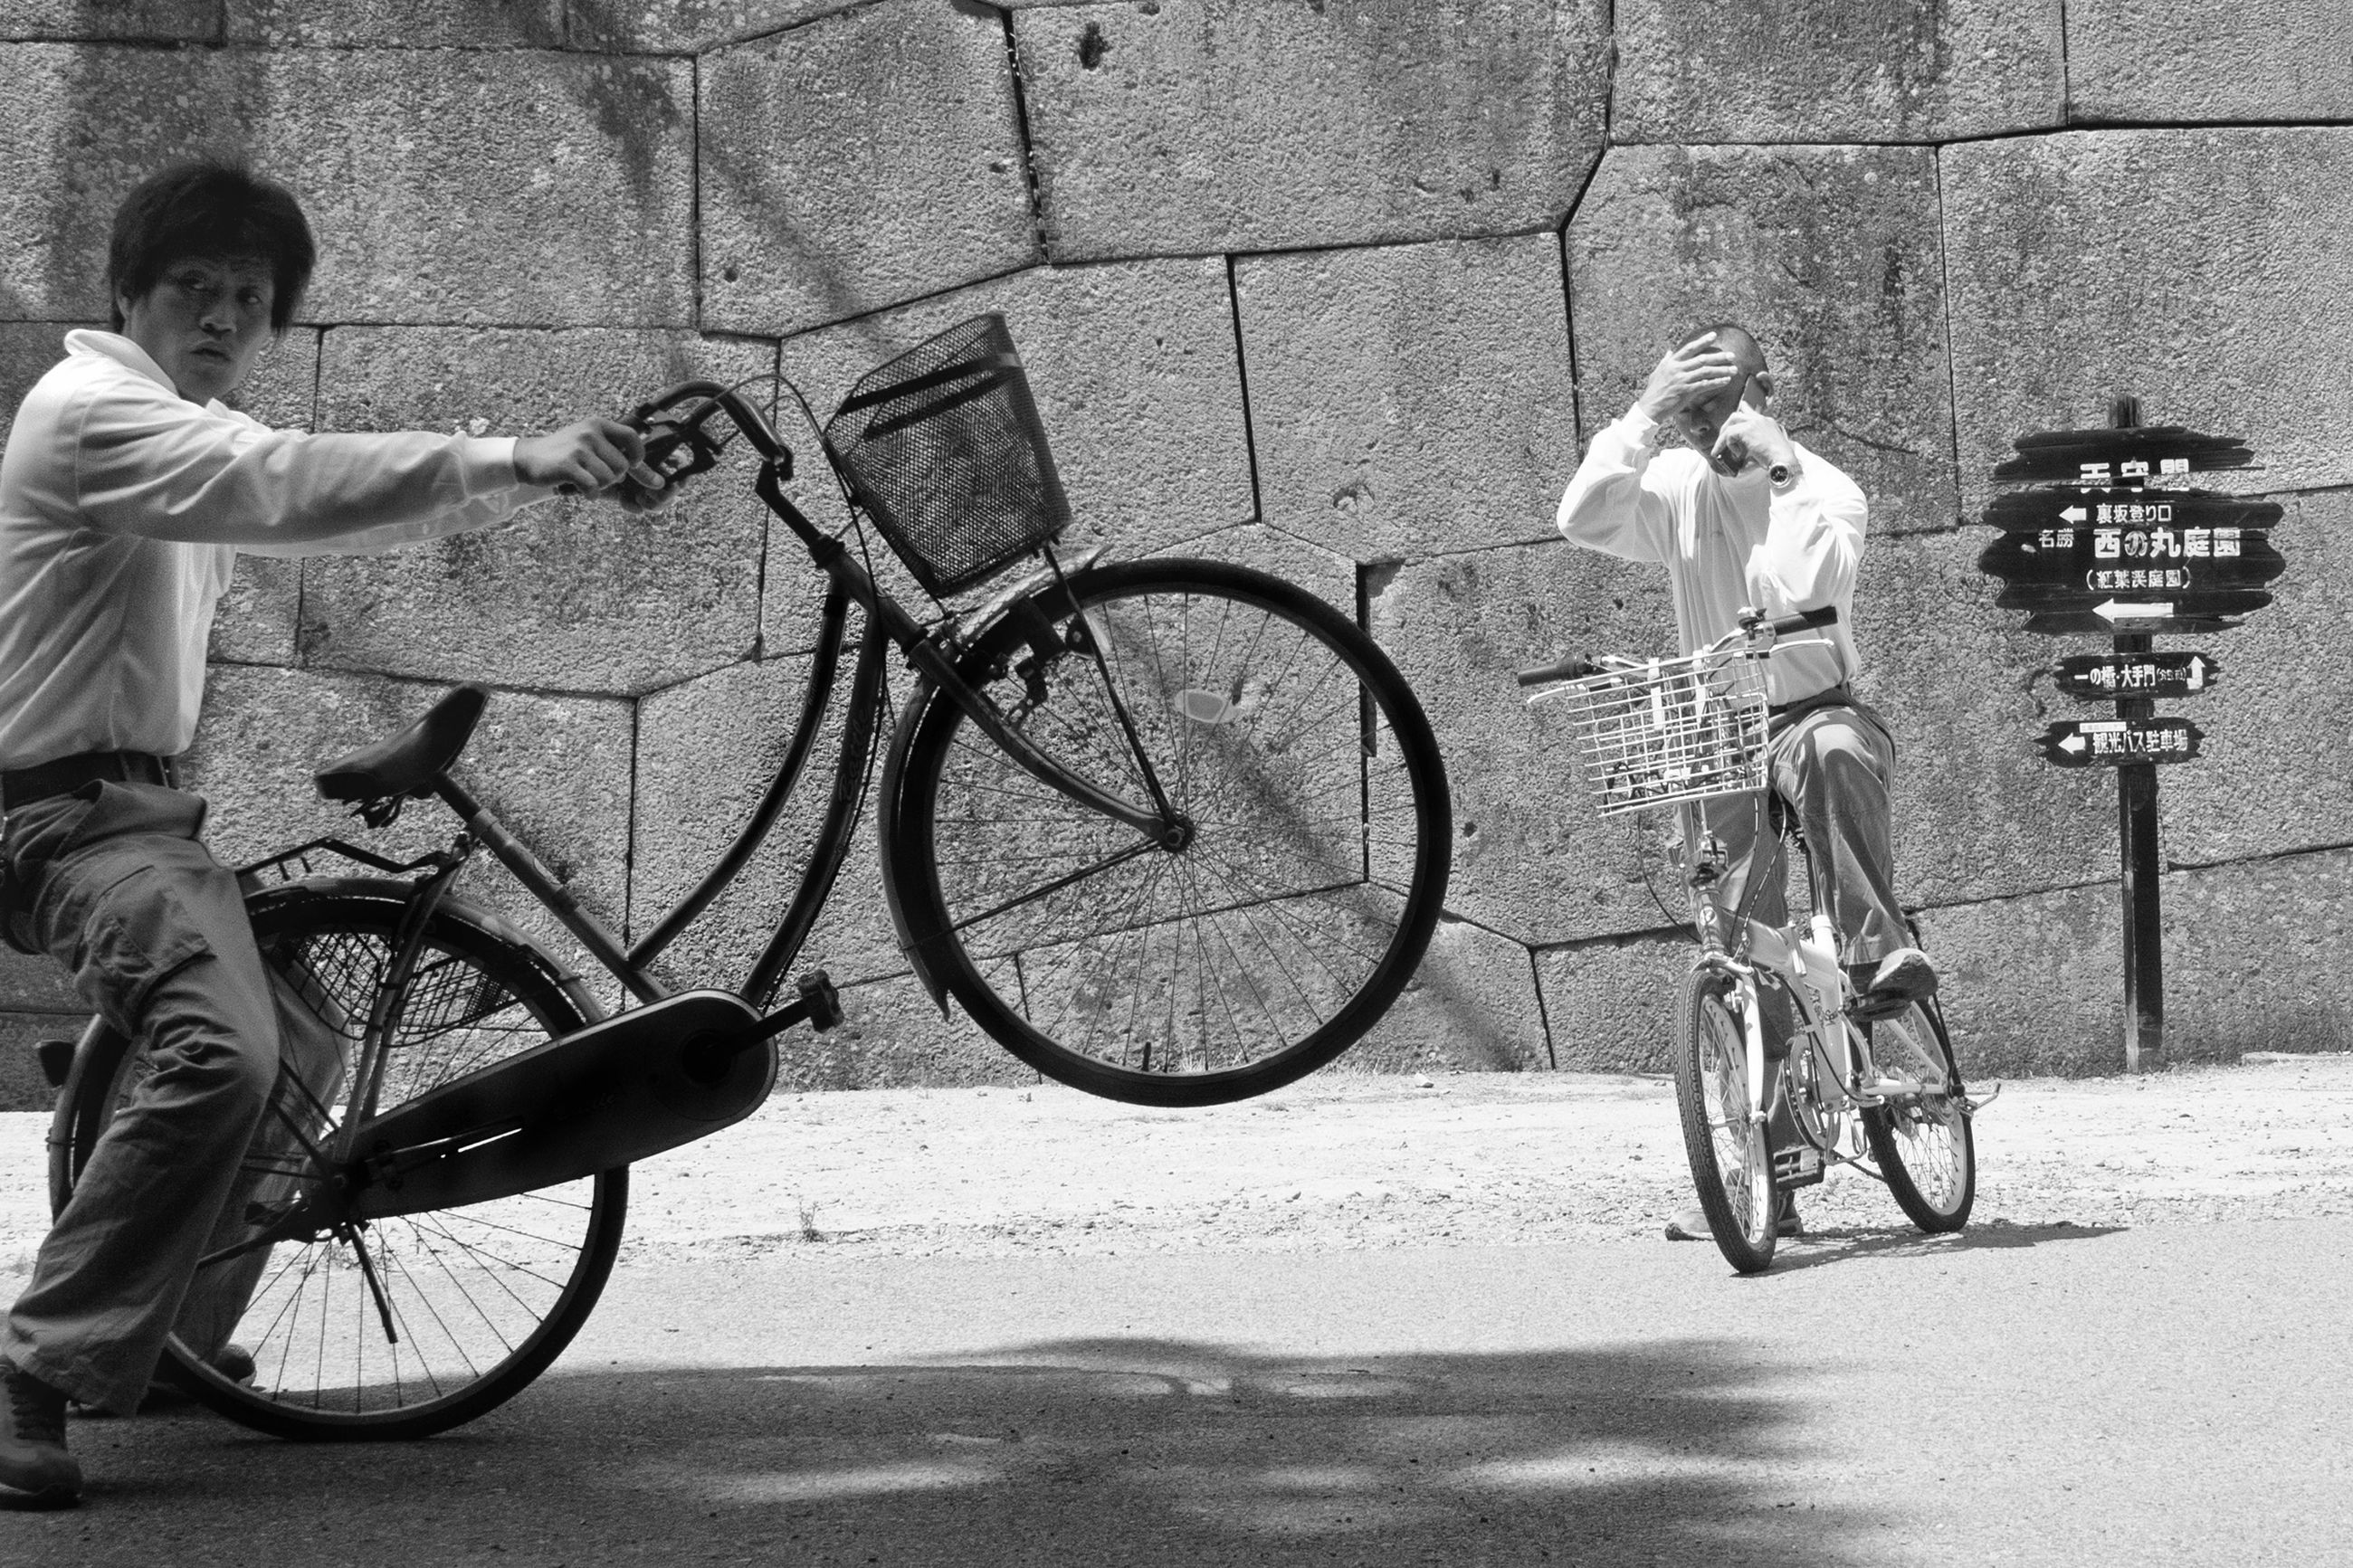 bicycle, transportation, mode of transport, land vehicle, lifestyles, real people, riding, two people, men, cycling, day, outdoors, people